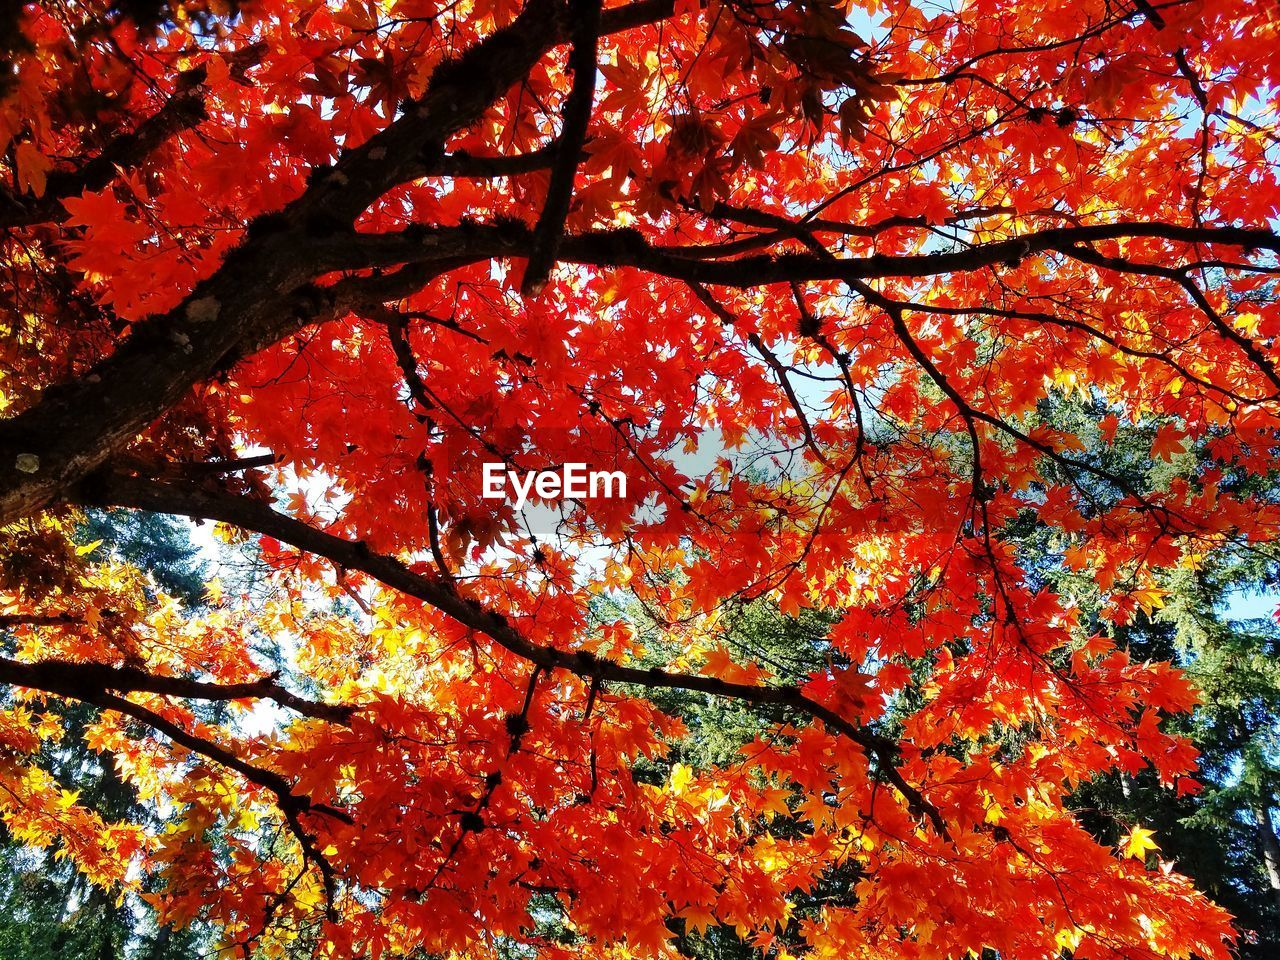 autumn, tree, plant, branch, change, low angle view, orange color, beauty in nature, nature, no people, growth, plant part, leaf, day, maple tree, outdoors, red, backgrounds, maple leaf, full frame, natural condition, tree canopy, leaves, fall, autumn collection